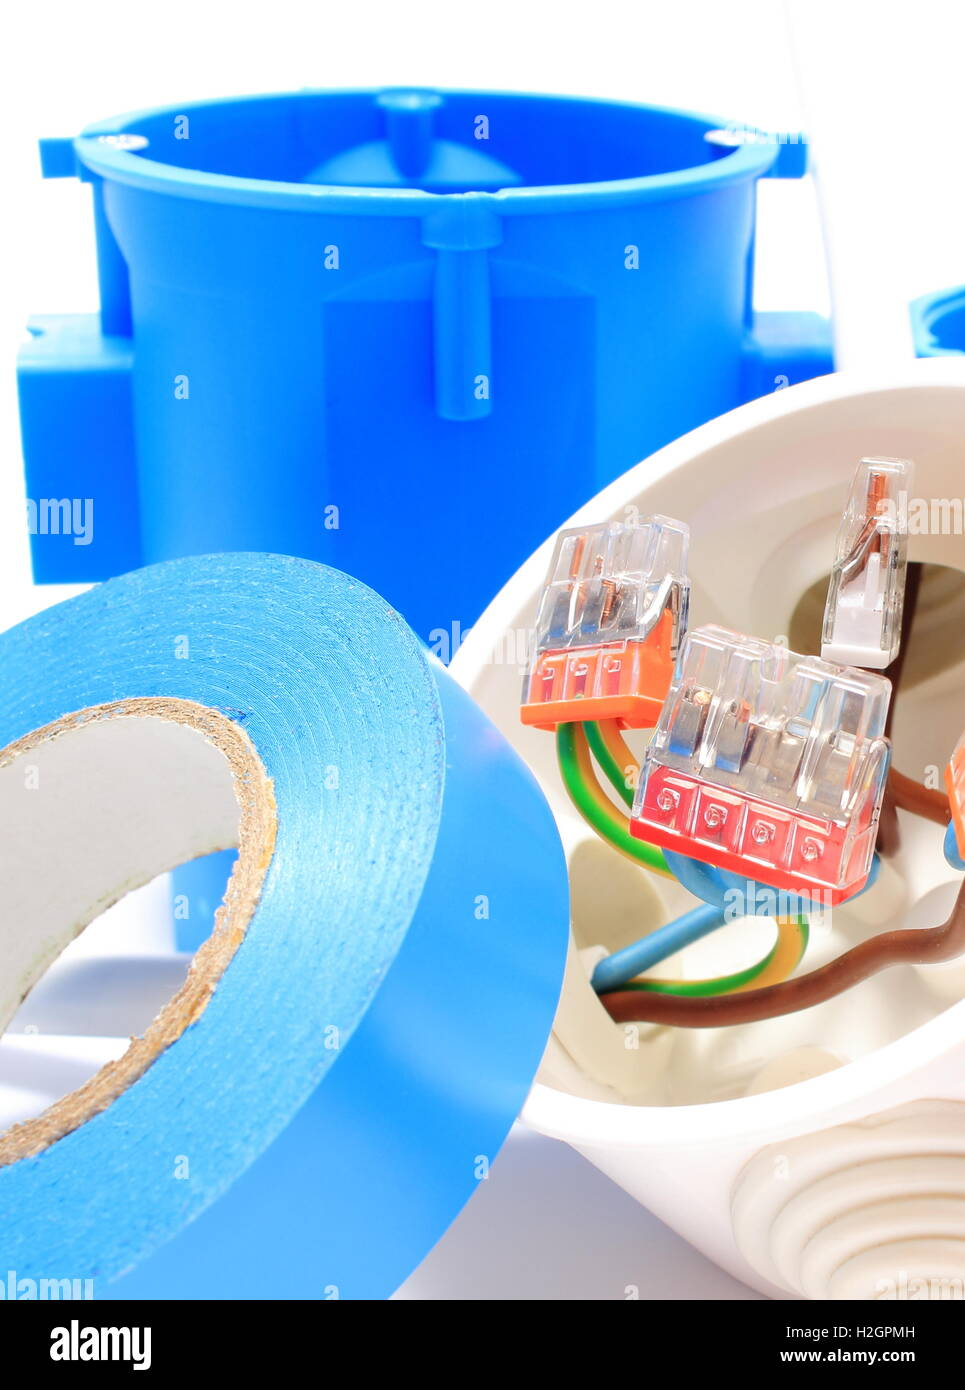 Copper Electrical Components : Copper wire connections in electrical box and components